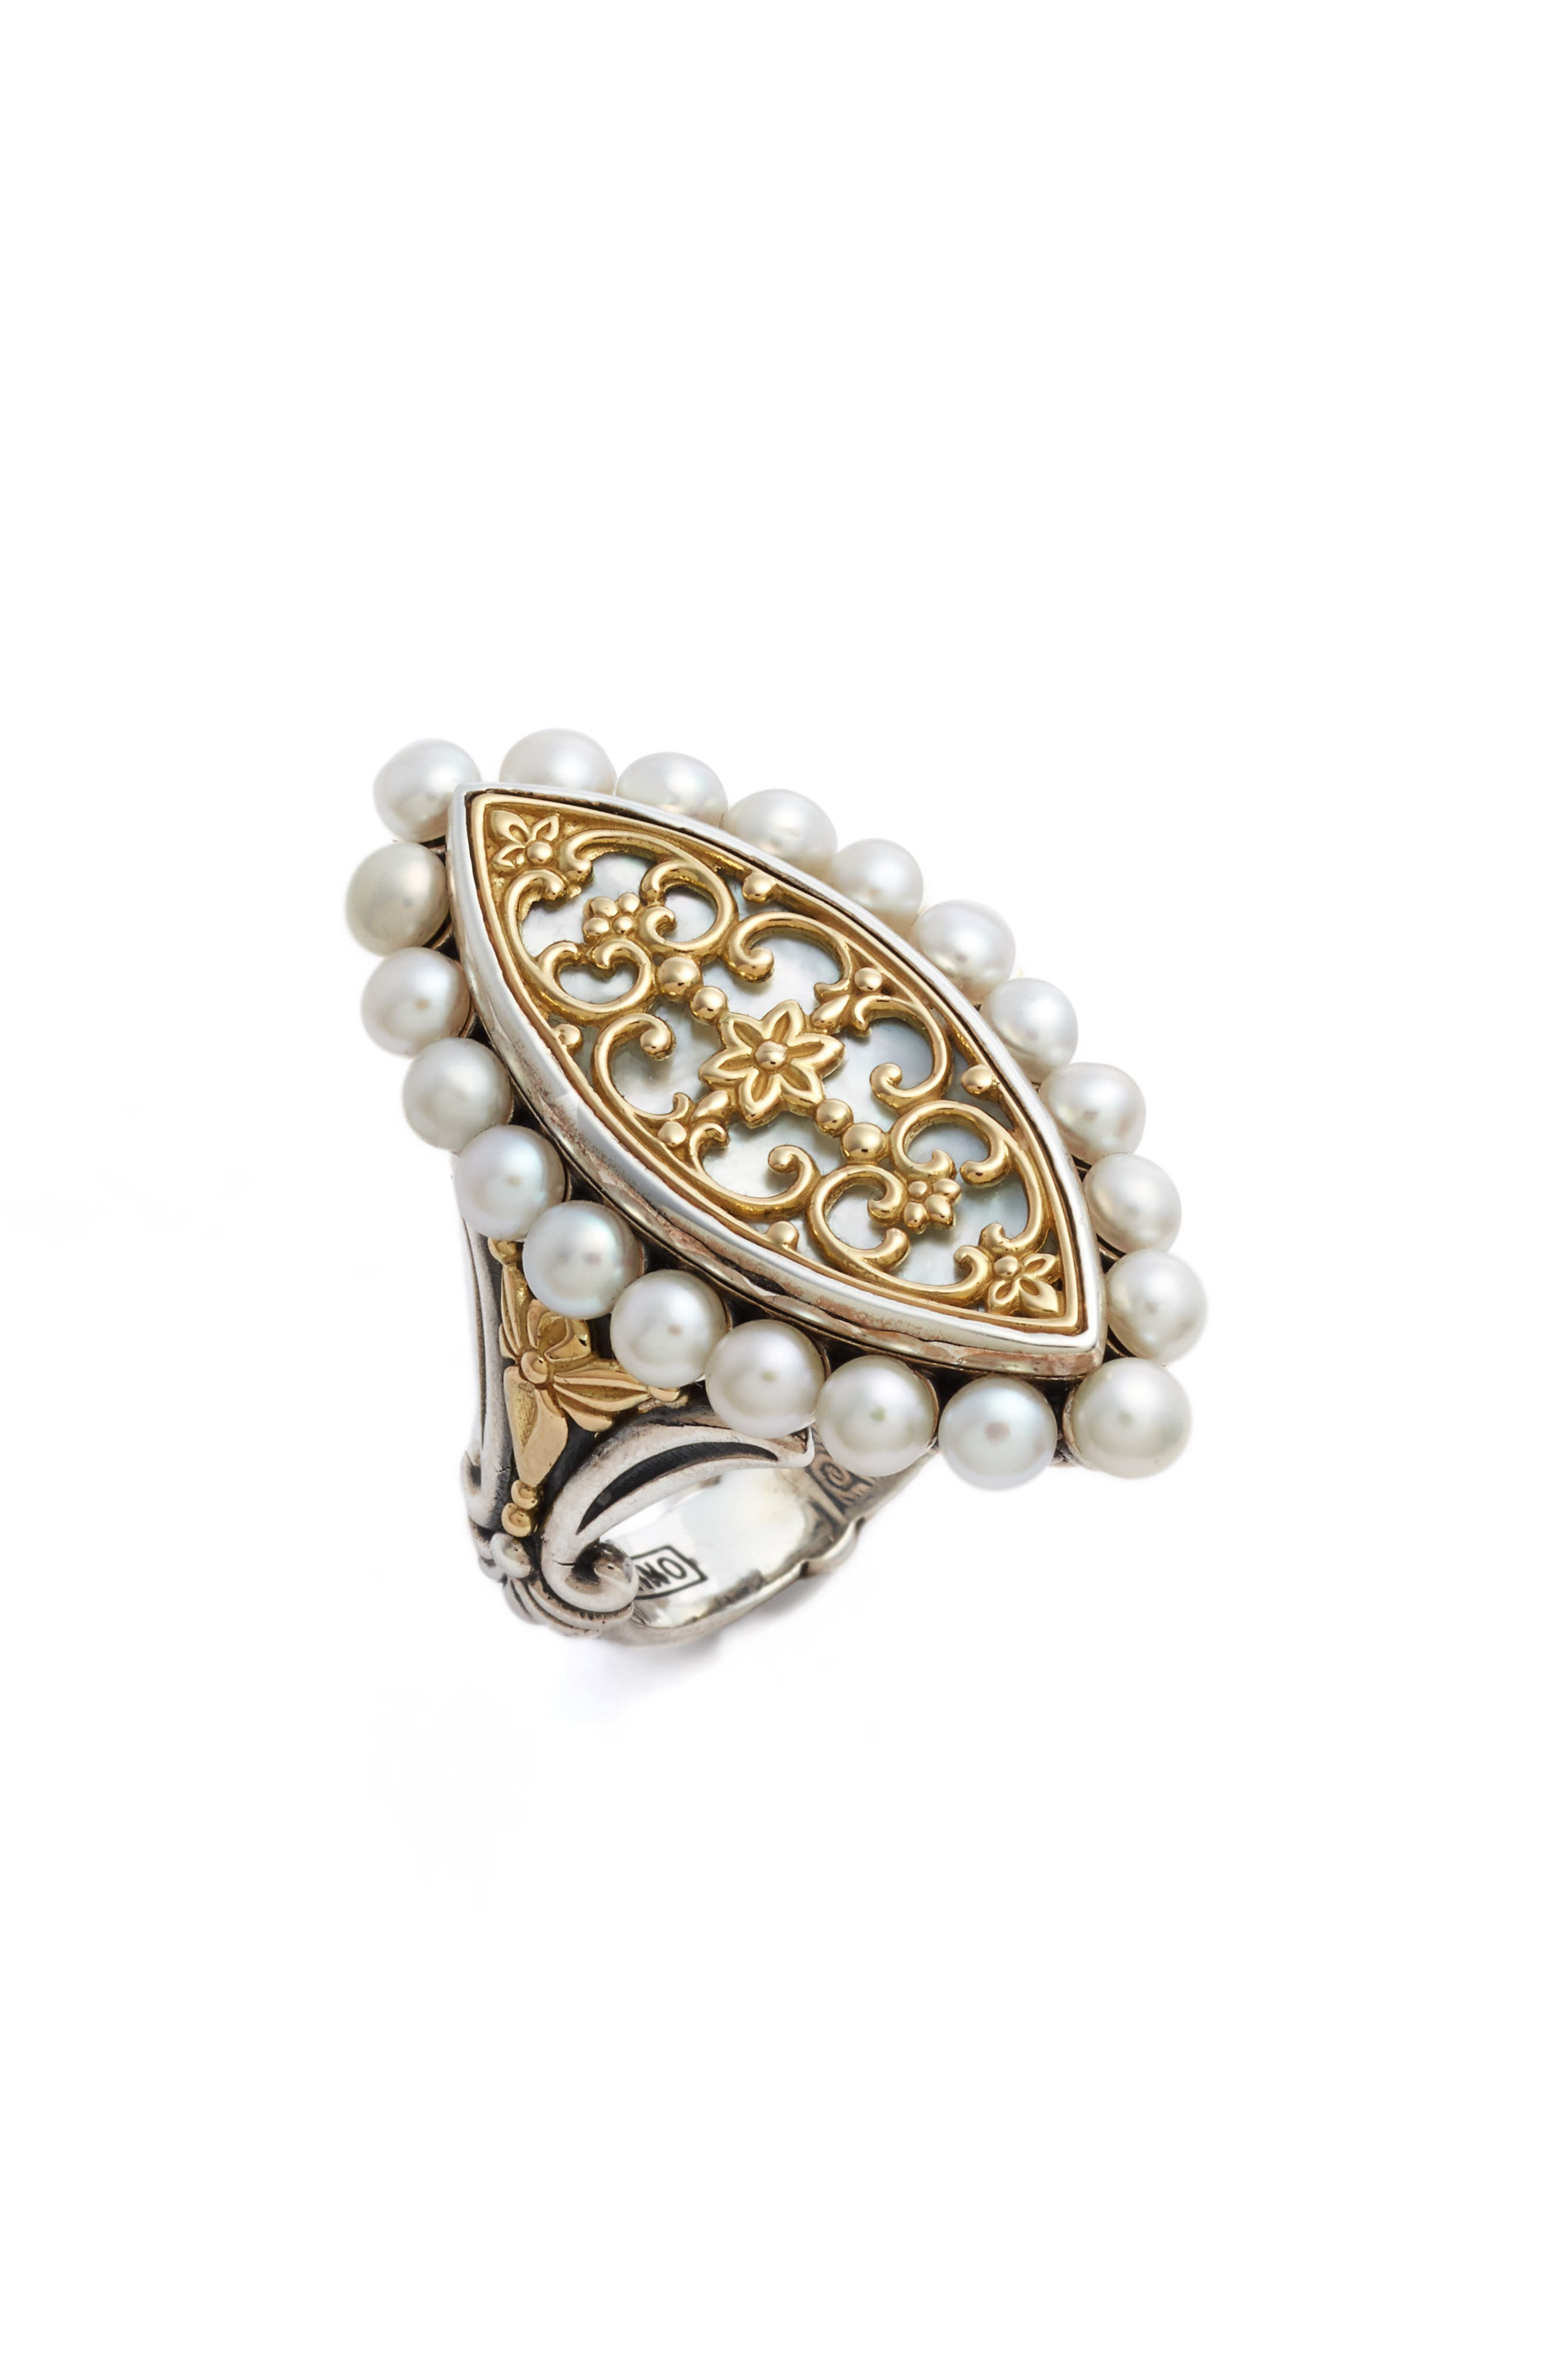 Sterling & Cultured Pearl Marquise Ring,                             Main thumbnail 1, color,                             Silver/ Gold/ White